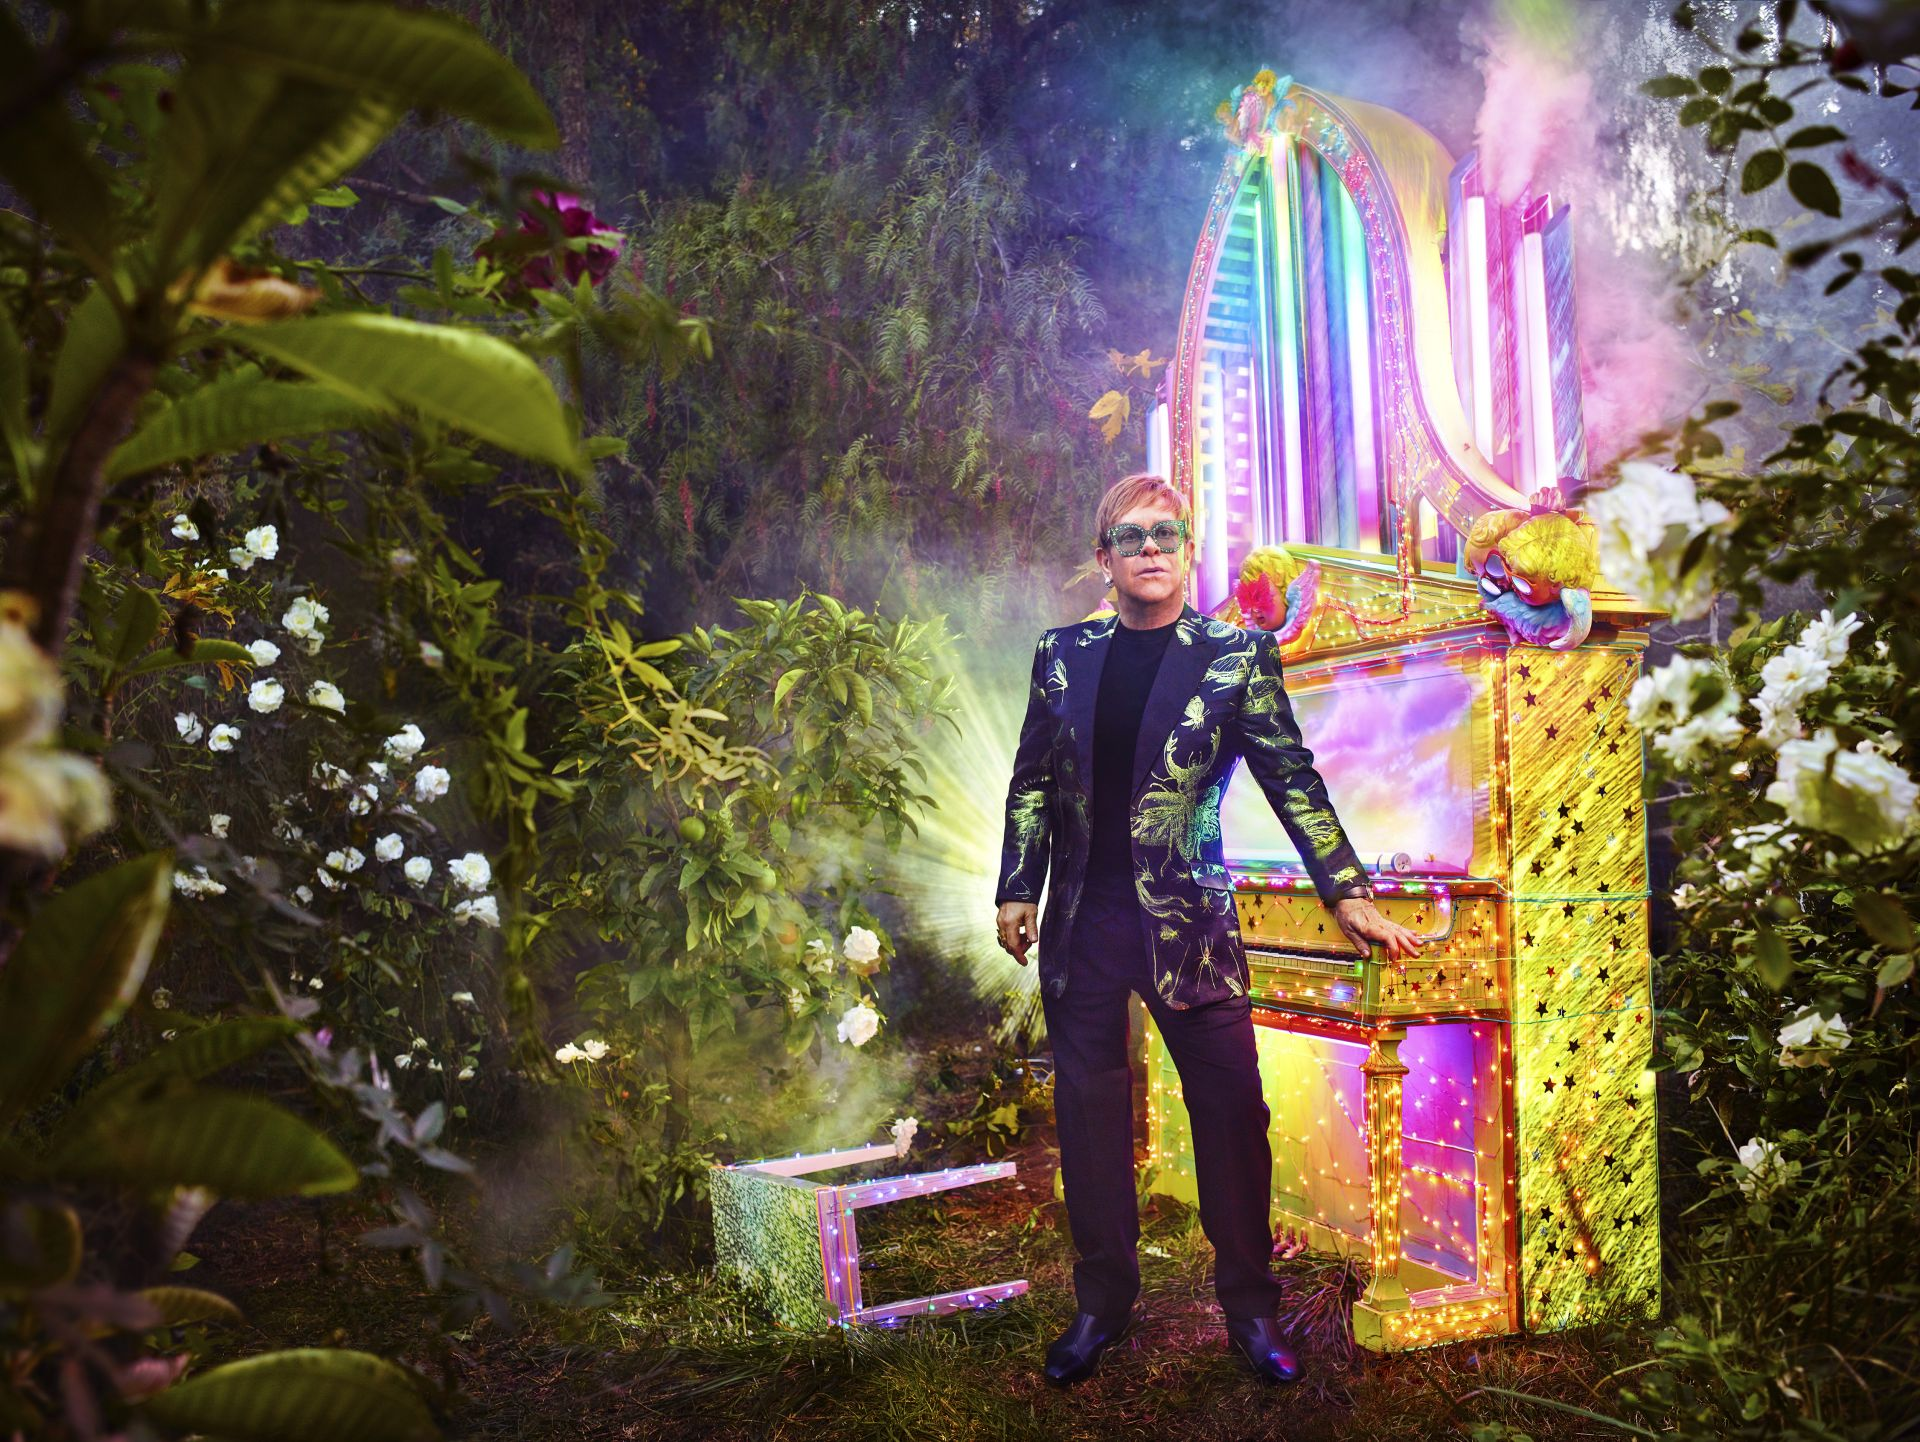 Elton John's farewell tour selling out quickly